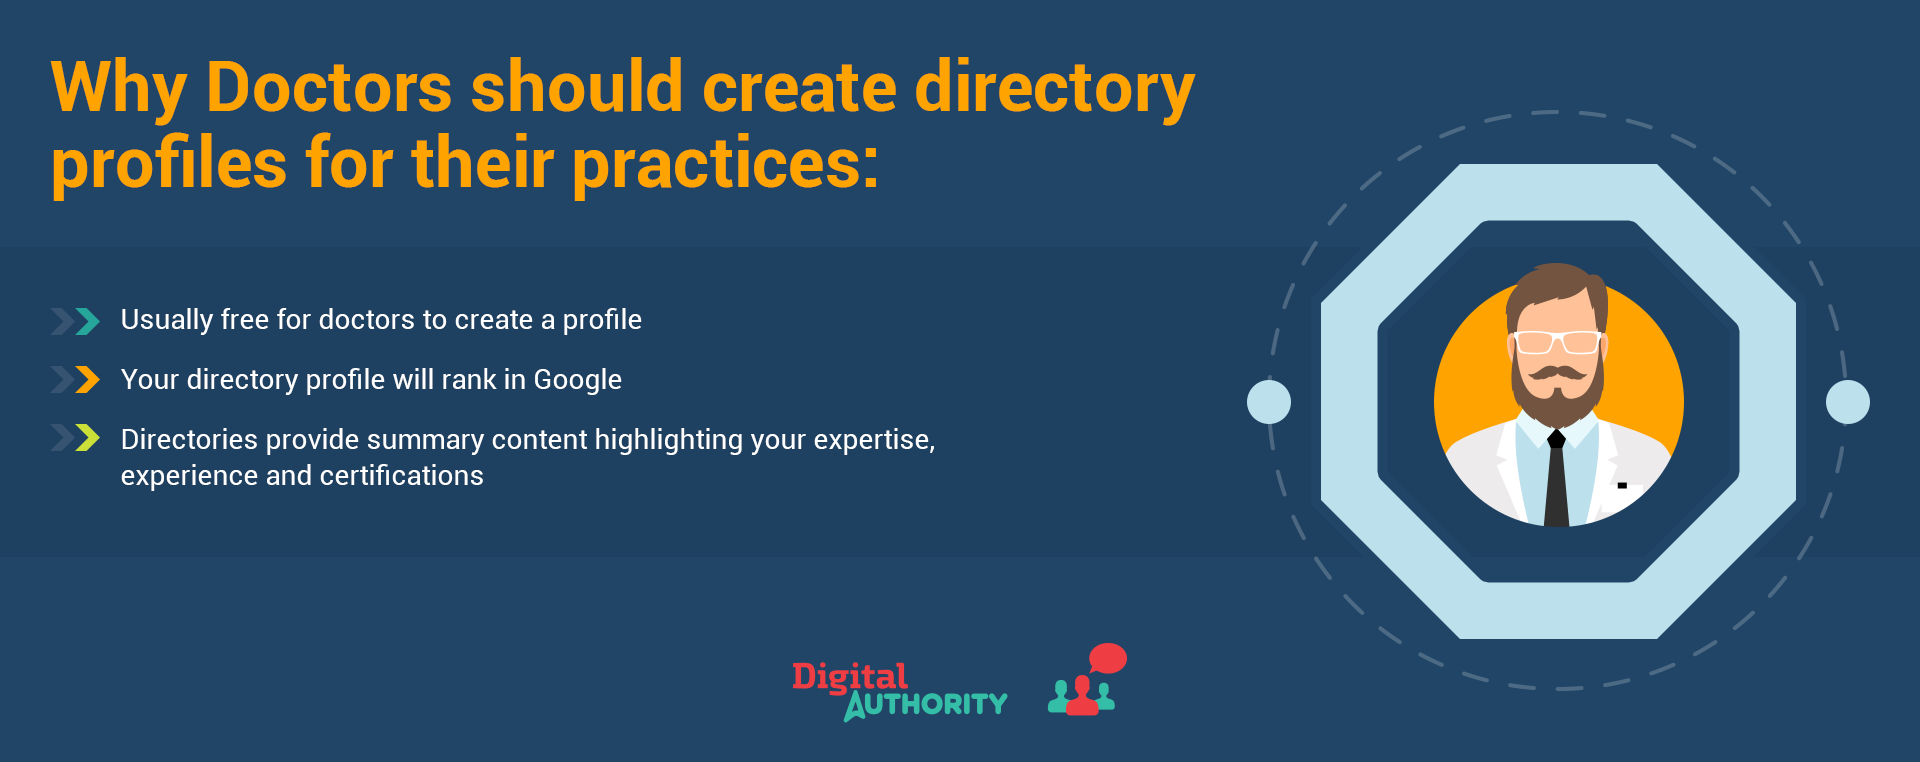 Why Doctors should create directory profiles for their profiles: 1. Usually free for doctors to create a profile. 2. Your directory profile will rank in Google. 3. Directories provide summary content highlighting your expertise, experiences, and certifications.